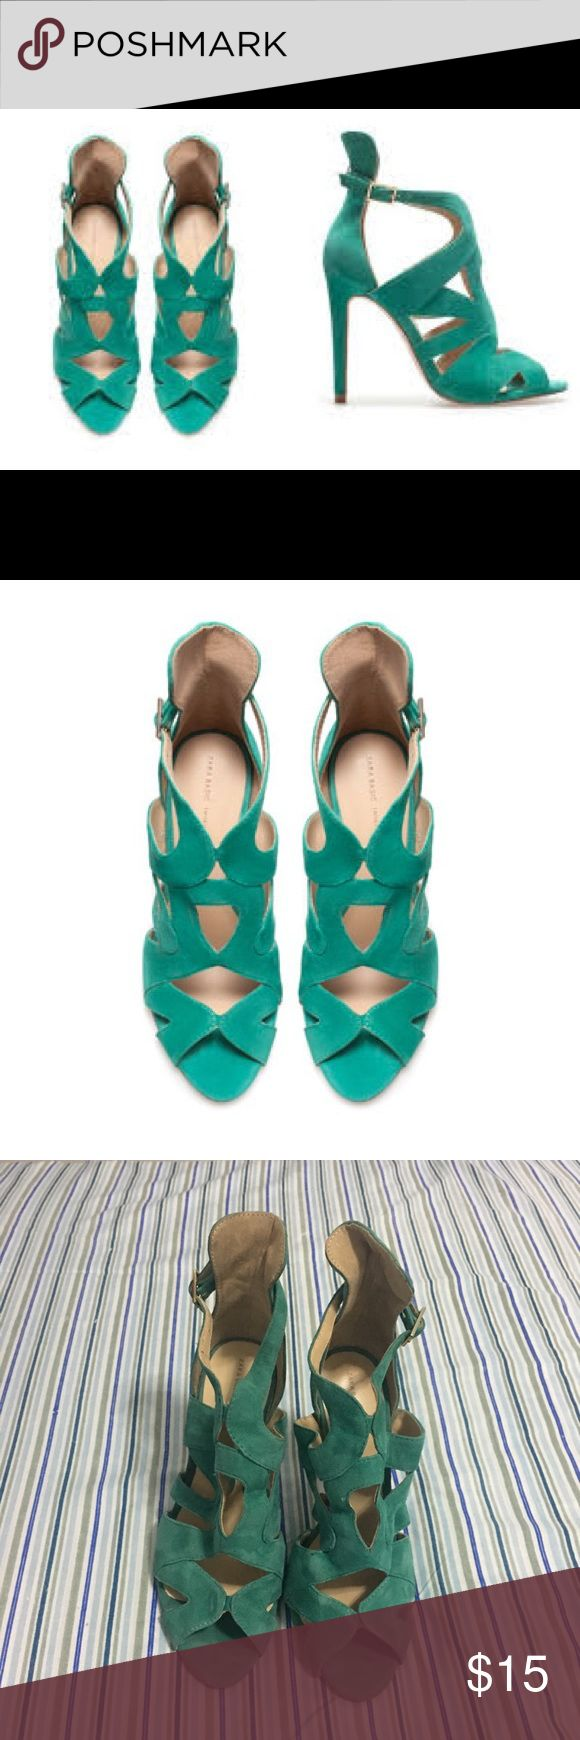 Zara Teal Caged Sandal Caged teal sandal, 9/10 condition, worn twice Zara Shoes Sandals